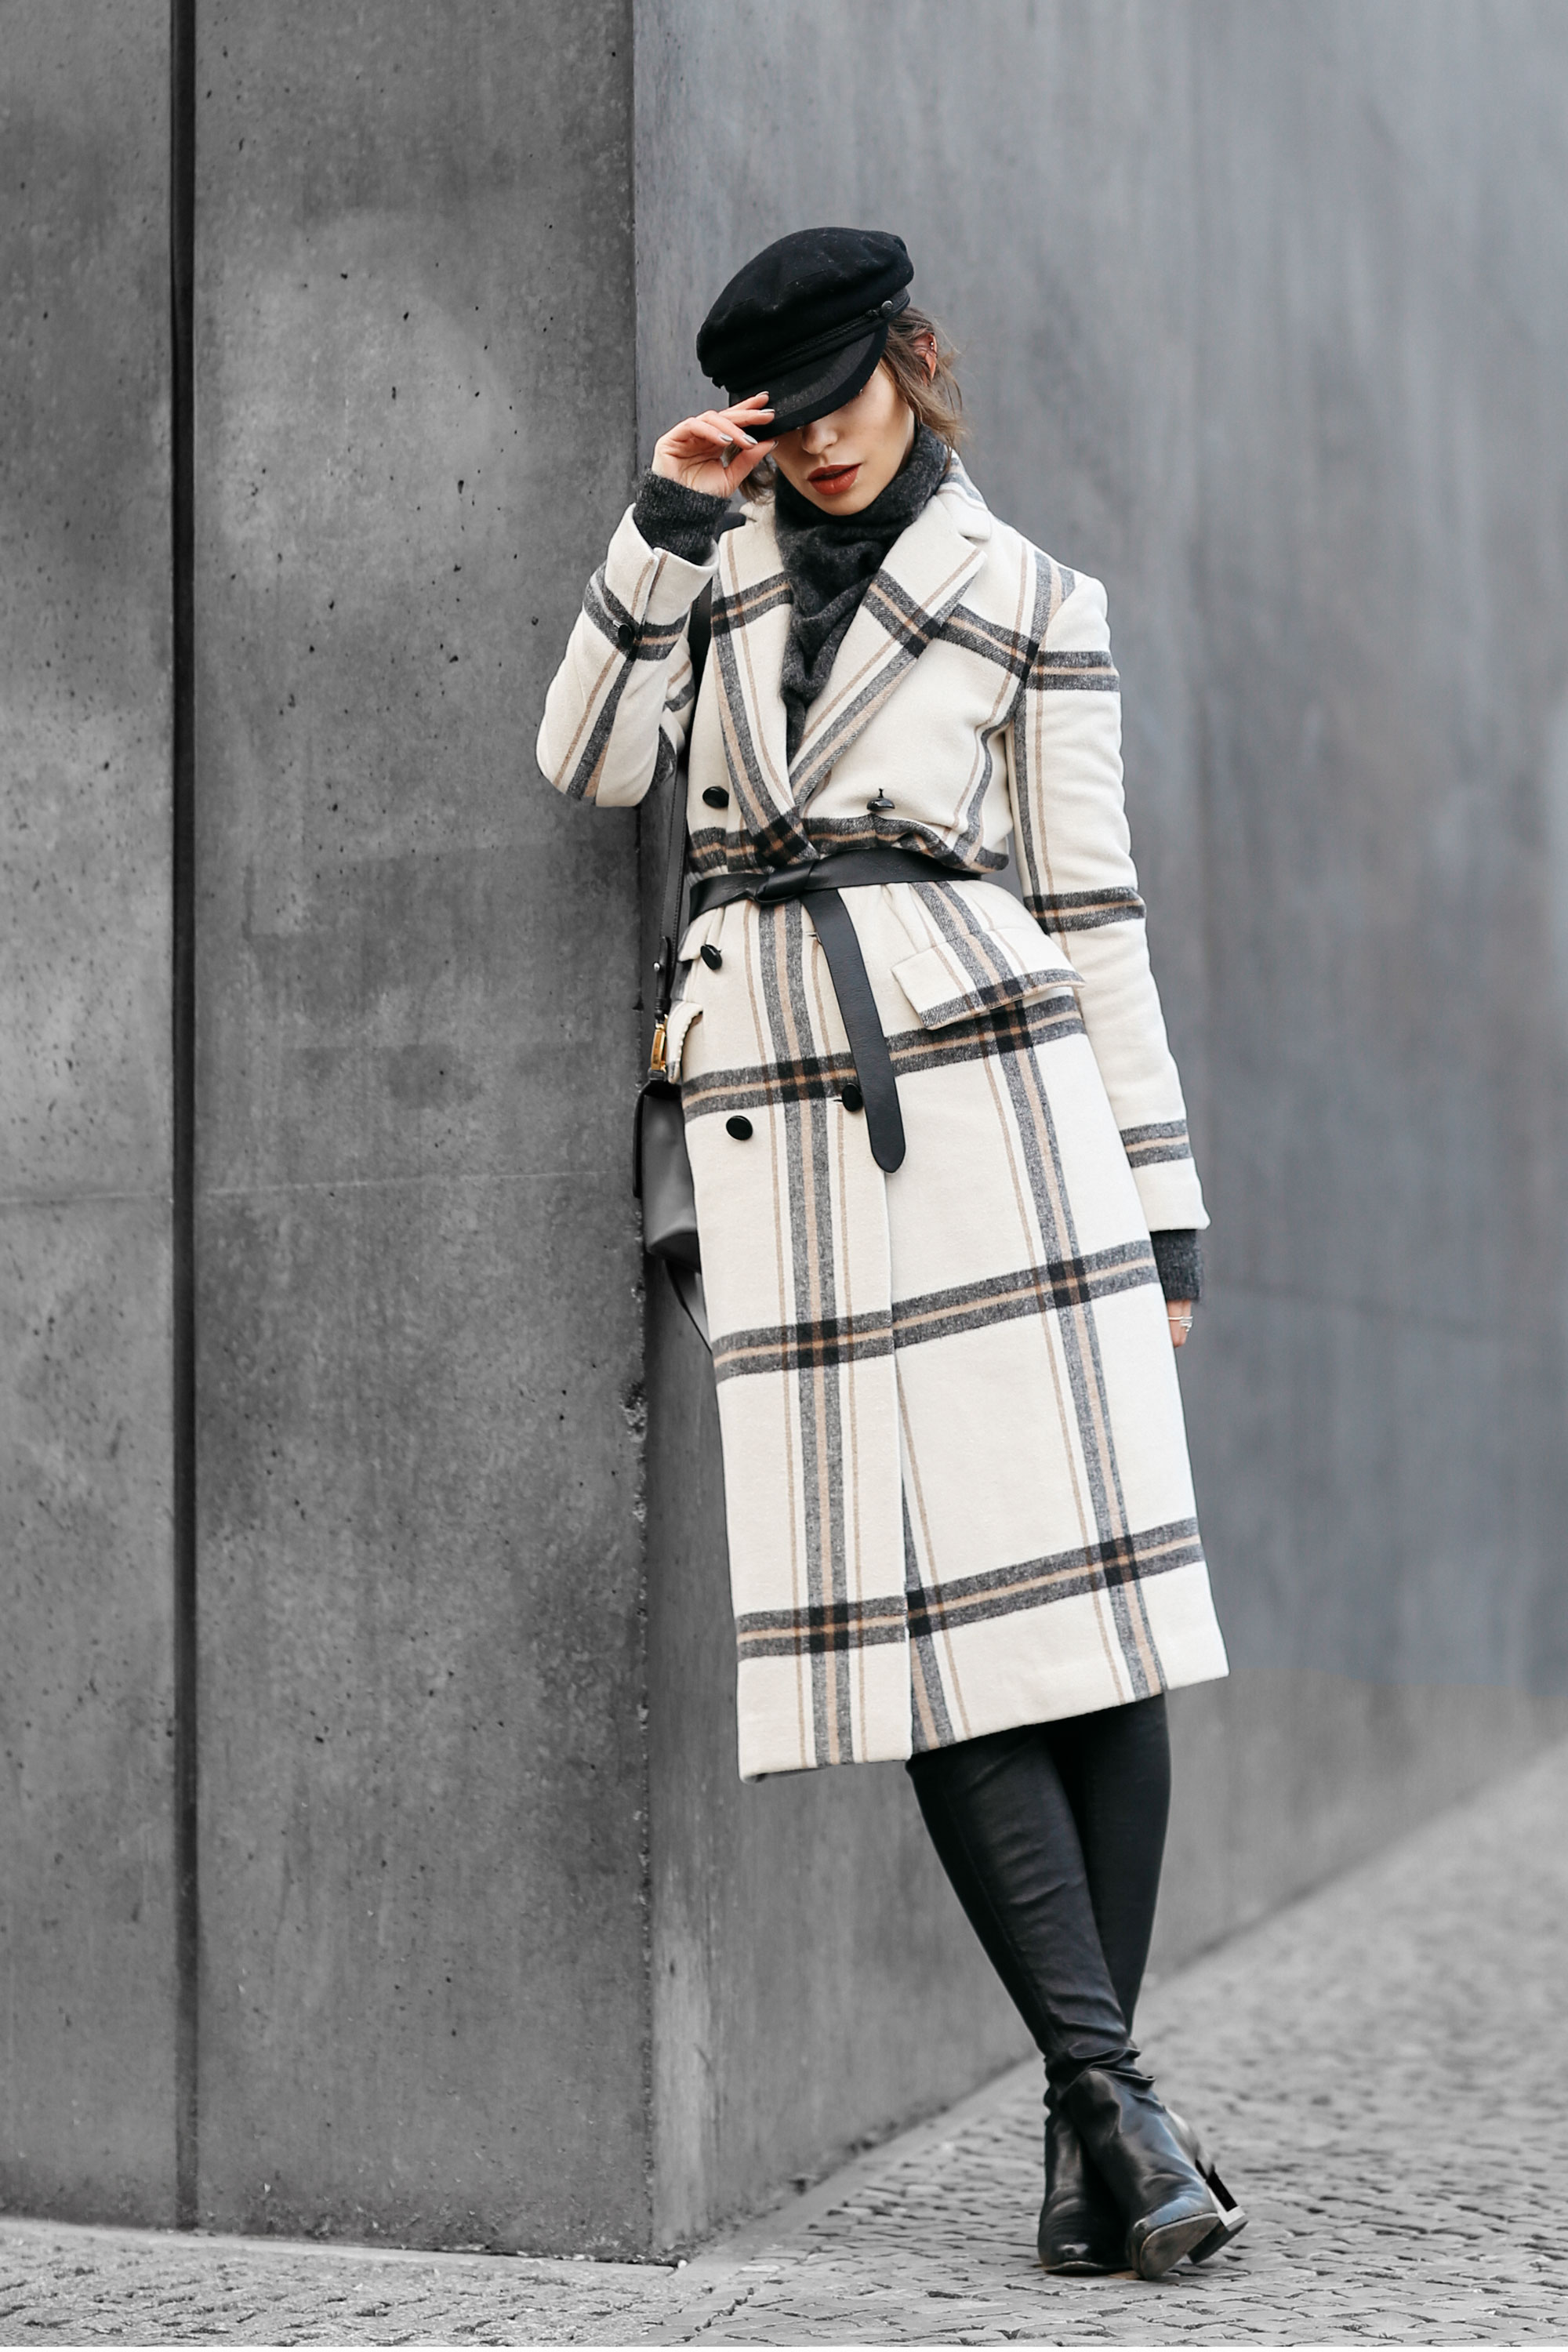 Street Style in Berlin | AW17 | Outfit | Fashion | coat: By Malene Birger | elegant, chic, checked | Autumn | Winter | Prada Ribbon Tasche